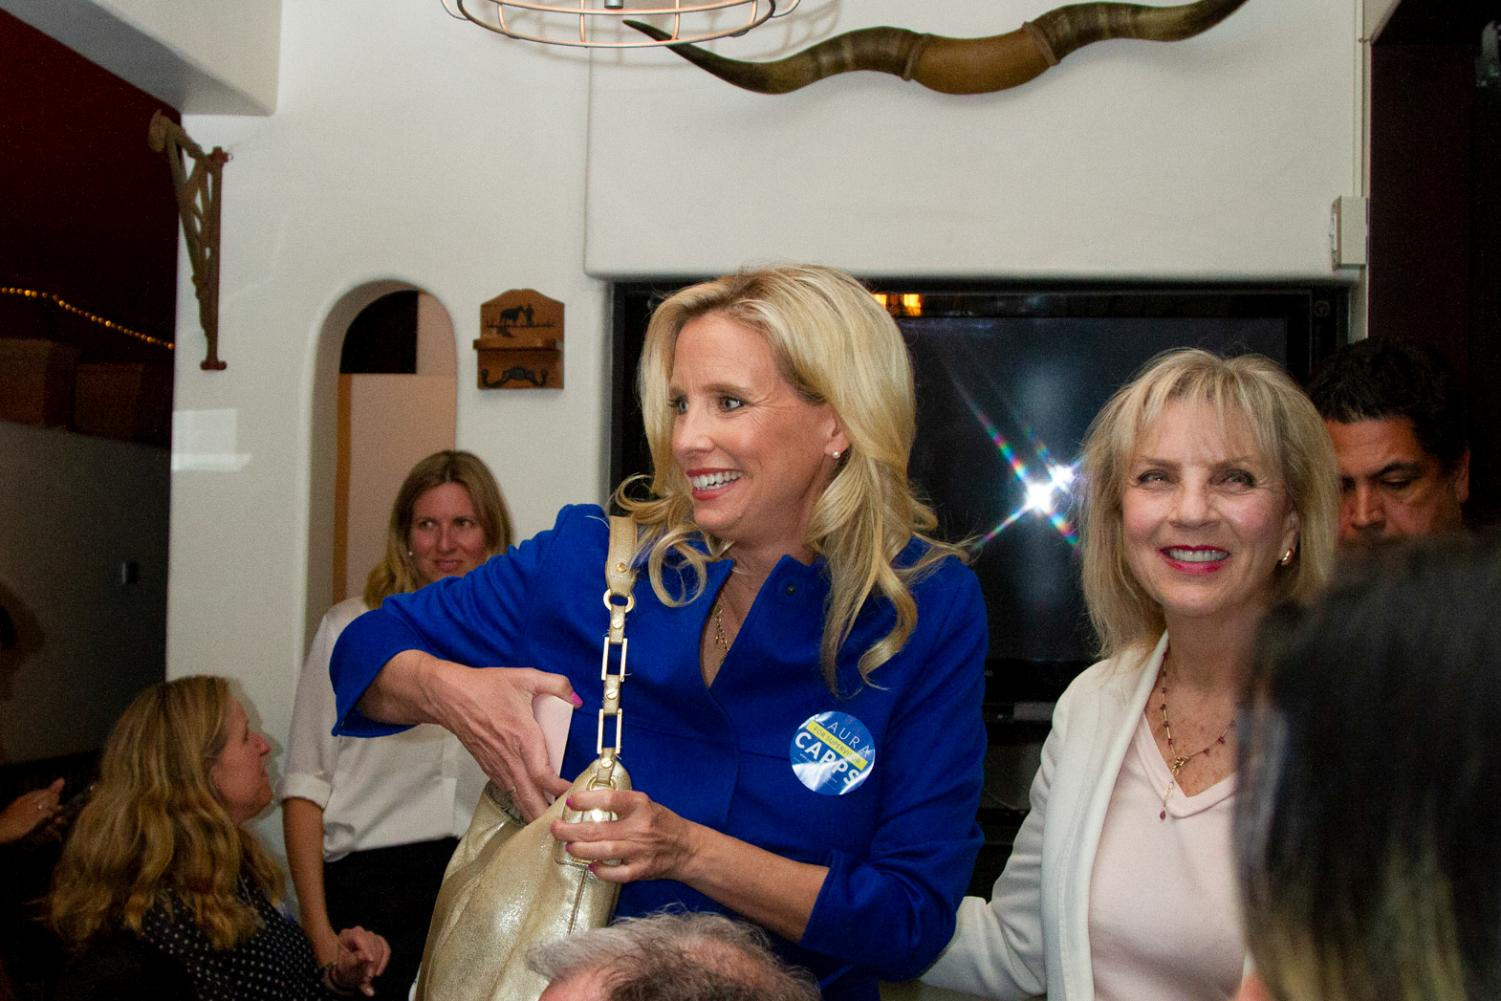 Laura Capps similes while entering her joint election party with Elsa Granados on Tuesday, March 3, 2020 at Jill's Place Restaurant in Downtown Santa Barbara, Calif. Laura said that she can be optimistic and positive about her campaign because they were able to communicate with voters.